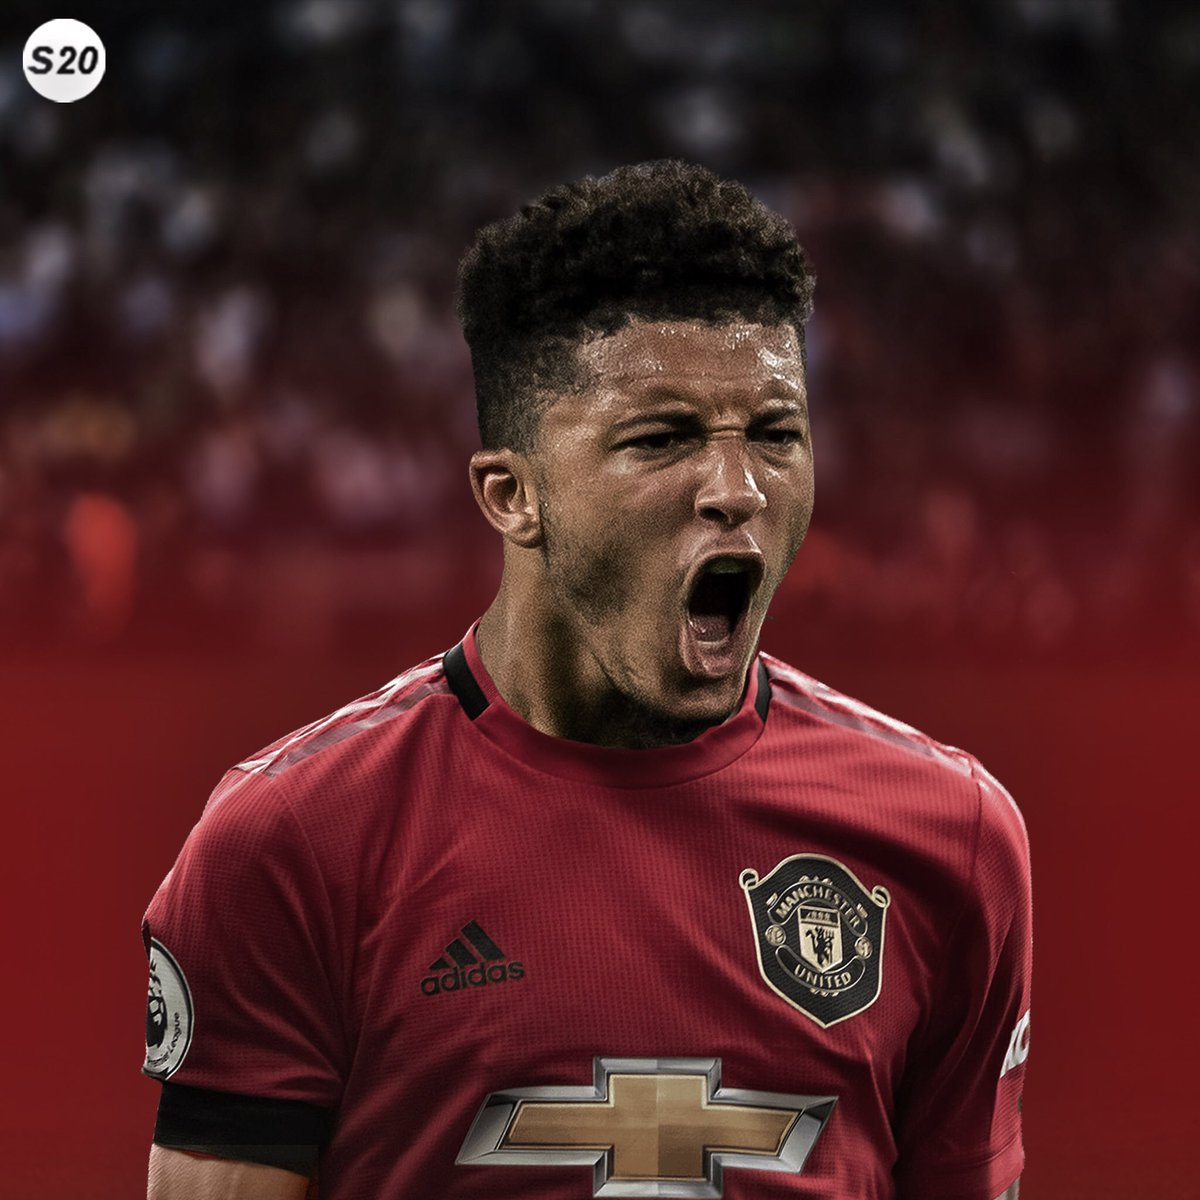 The only thing stopping Jadon Sancho becoming a #mufc player is fees: ✅The club are backing Ole ✅Ole wants the player to join the club ✅The player wants to join the club ✅Dortmund want to cash in on the player